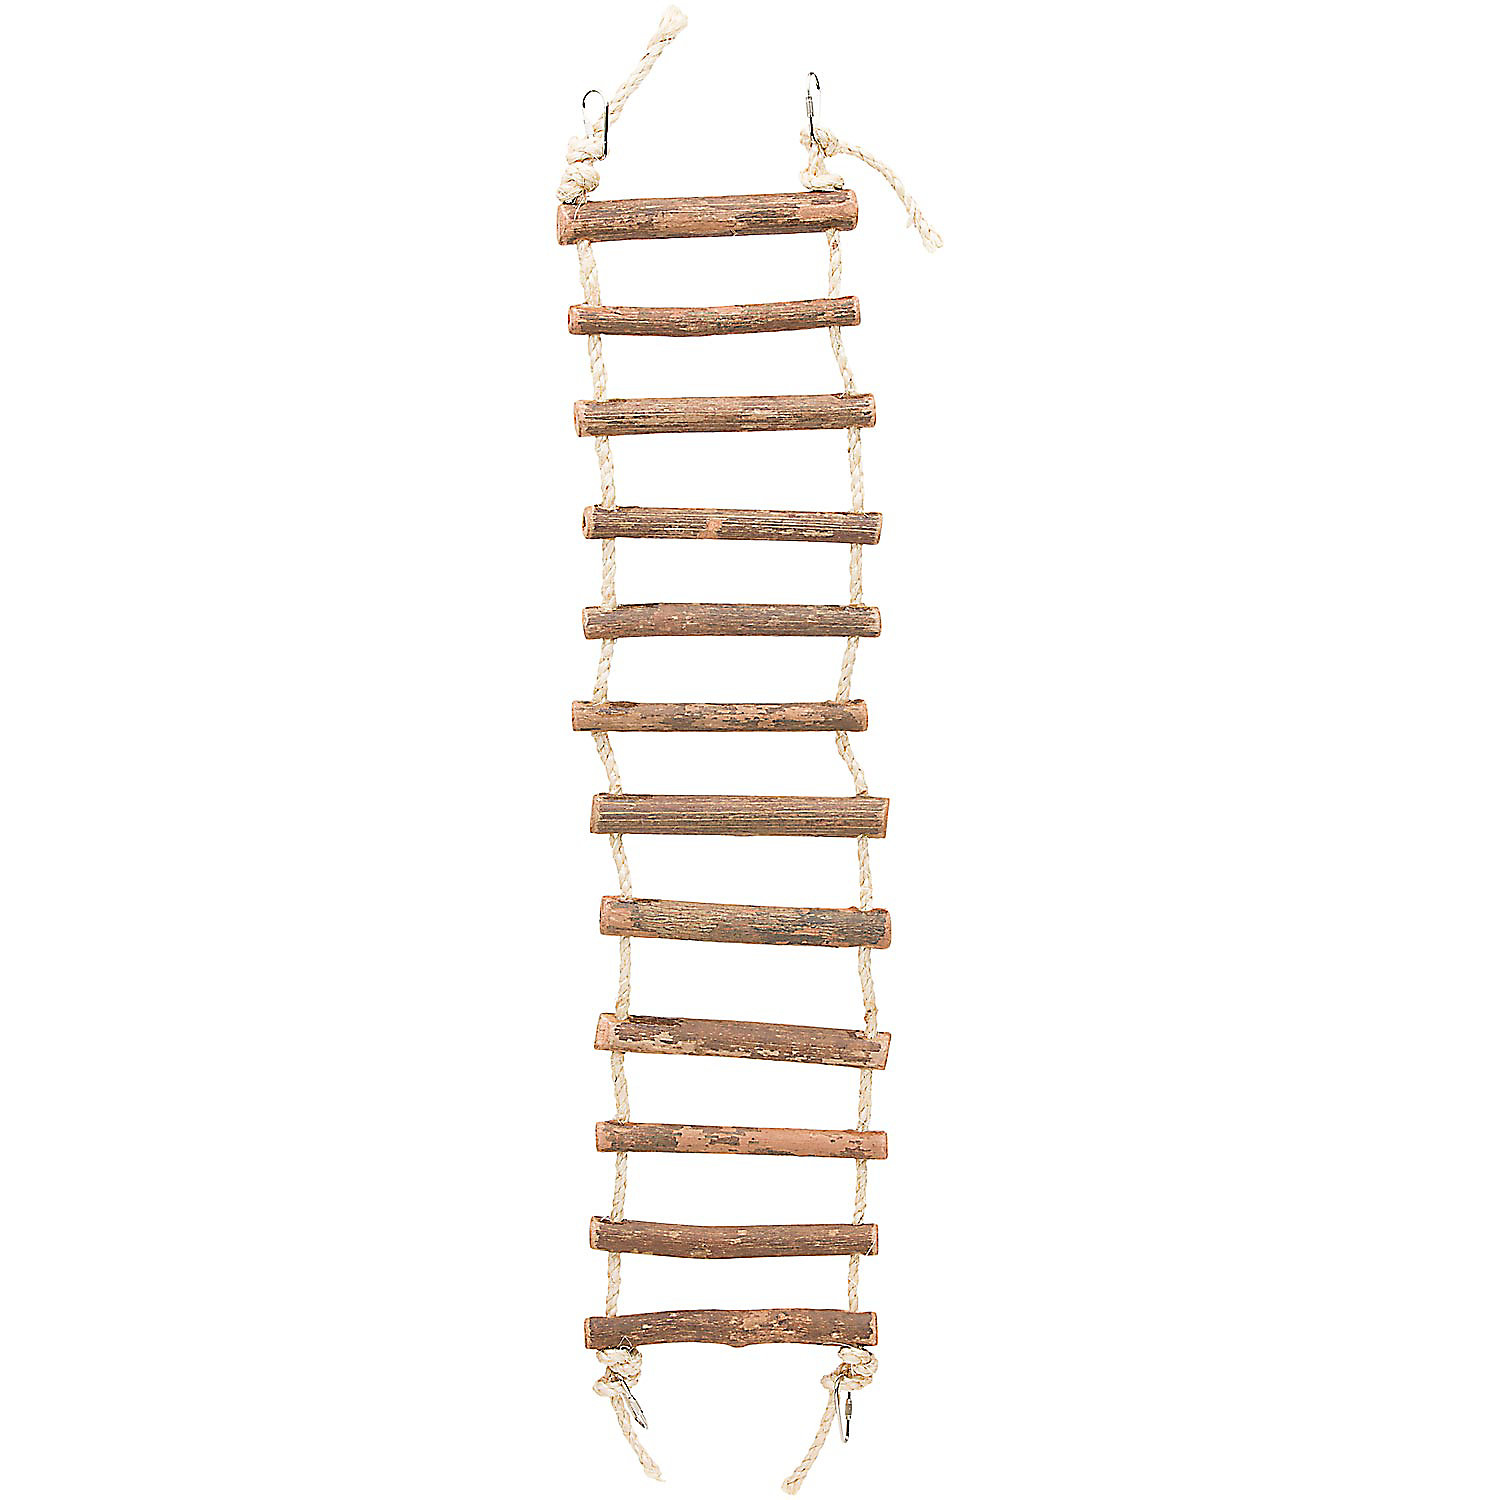 Prevue Hendryx Naturals Large Rope Ladder Bird Toy